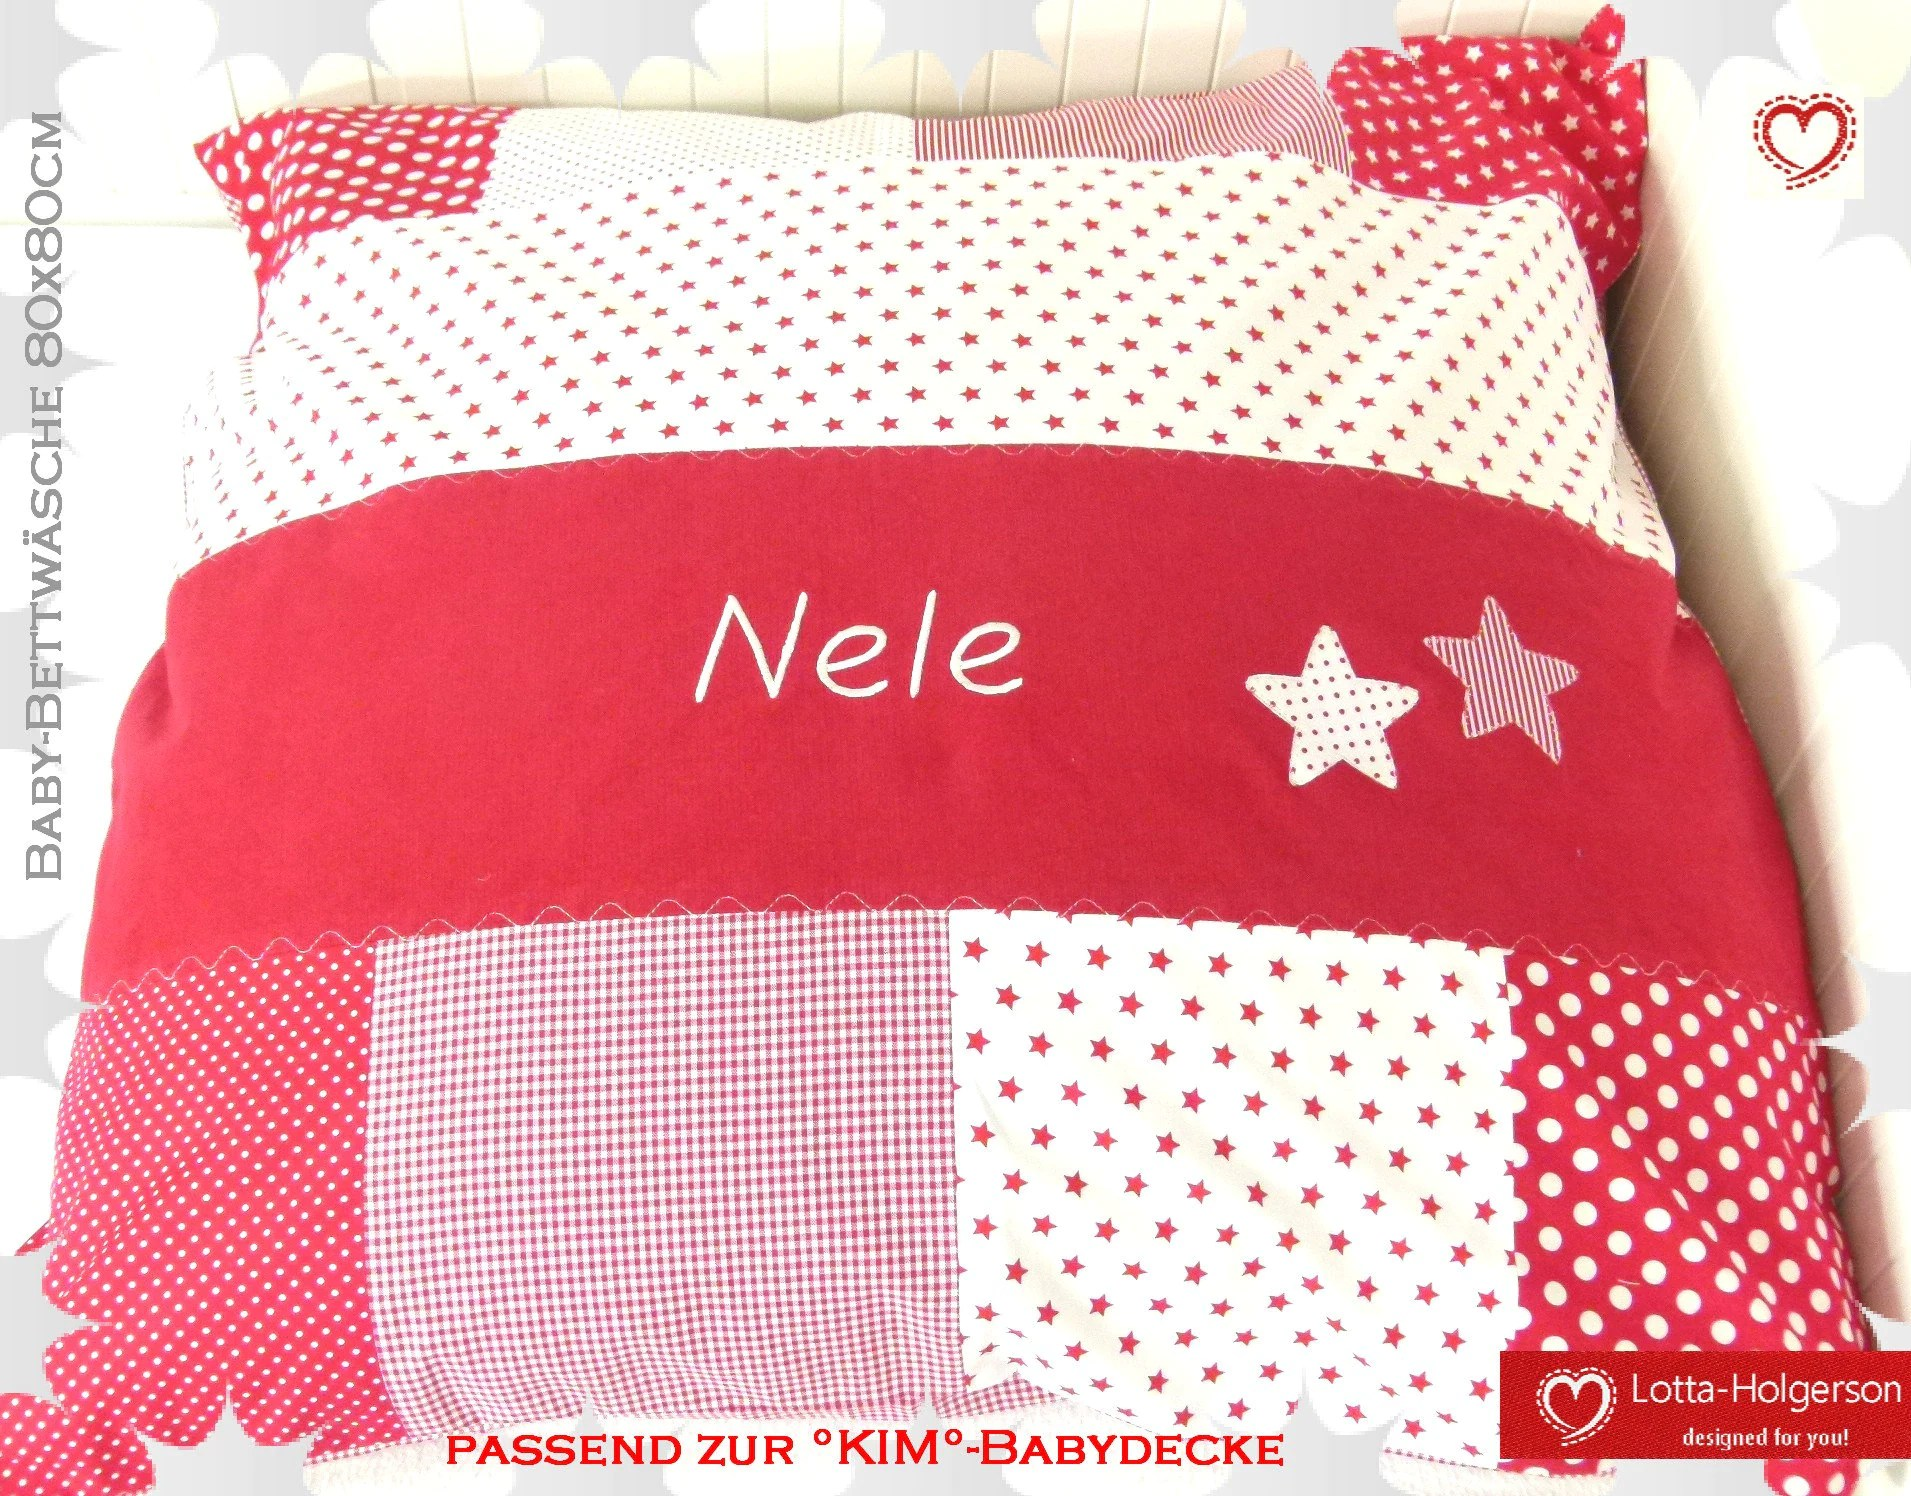 Bettwäsche Mit Namen Baby Bedding Baby Blanket Cover Patchwork Pillow Cover Duvet Cover 80 X 80 Cm Personalizable With Name